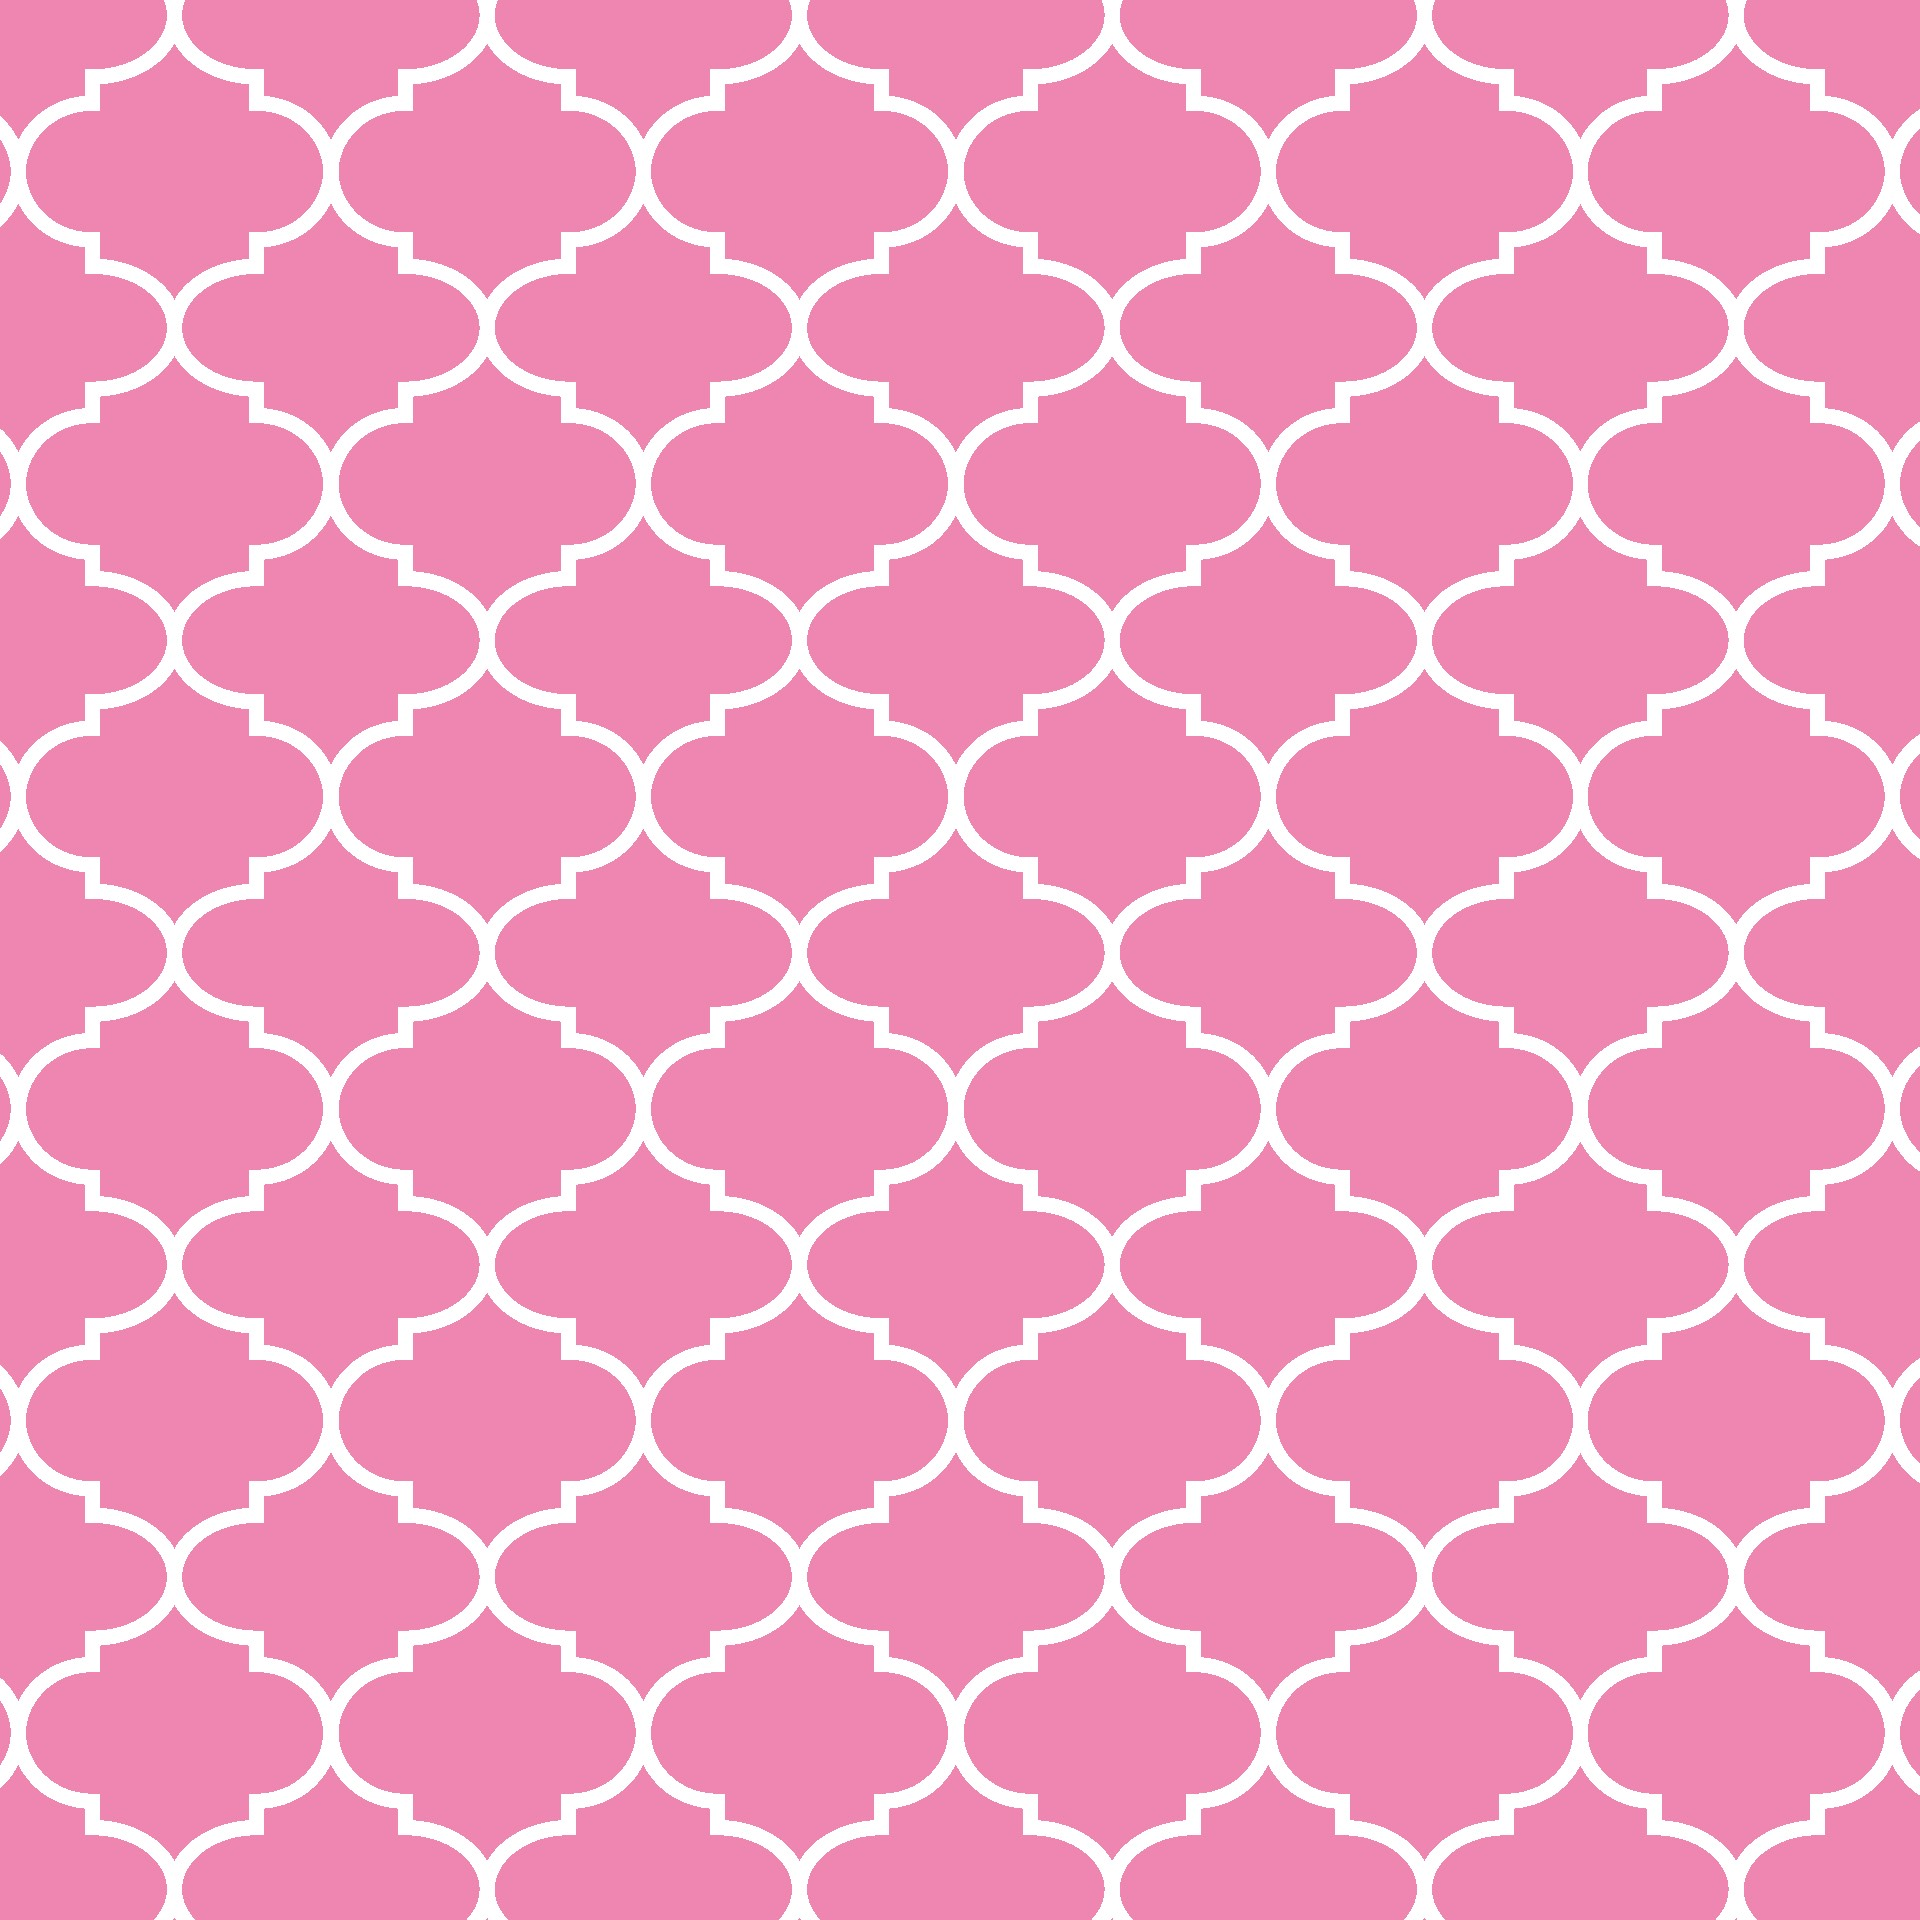 photograph regarding Printable Pattern Paper titled Moroccan Practice Printable Origami Paper